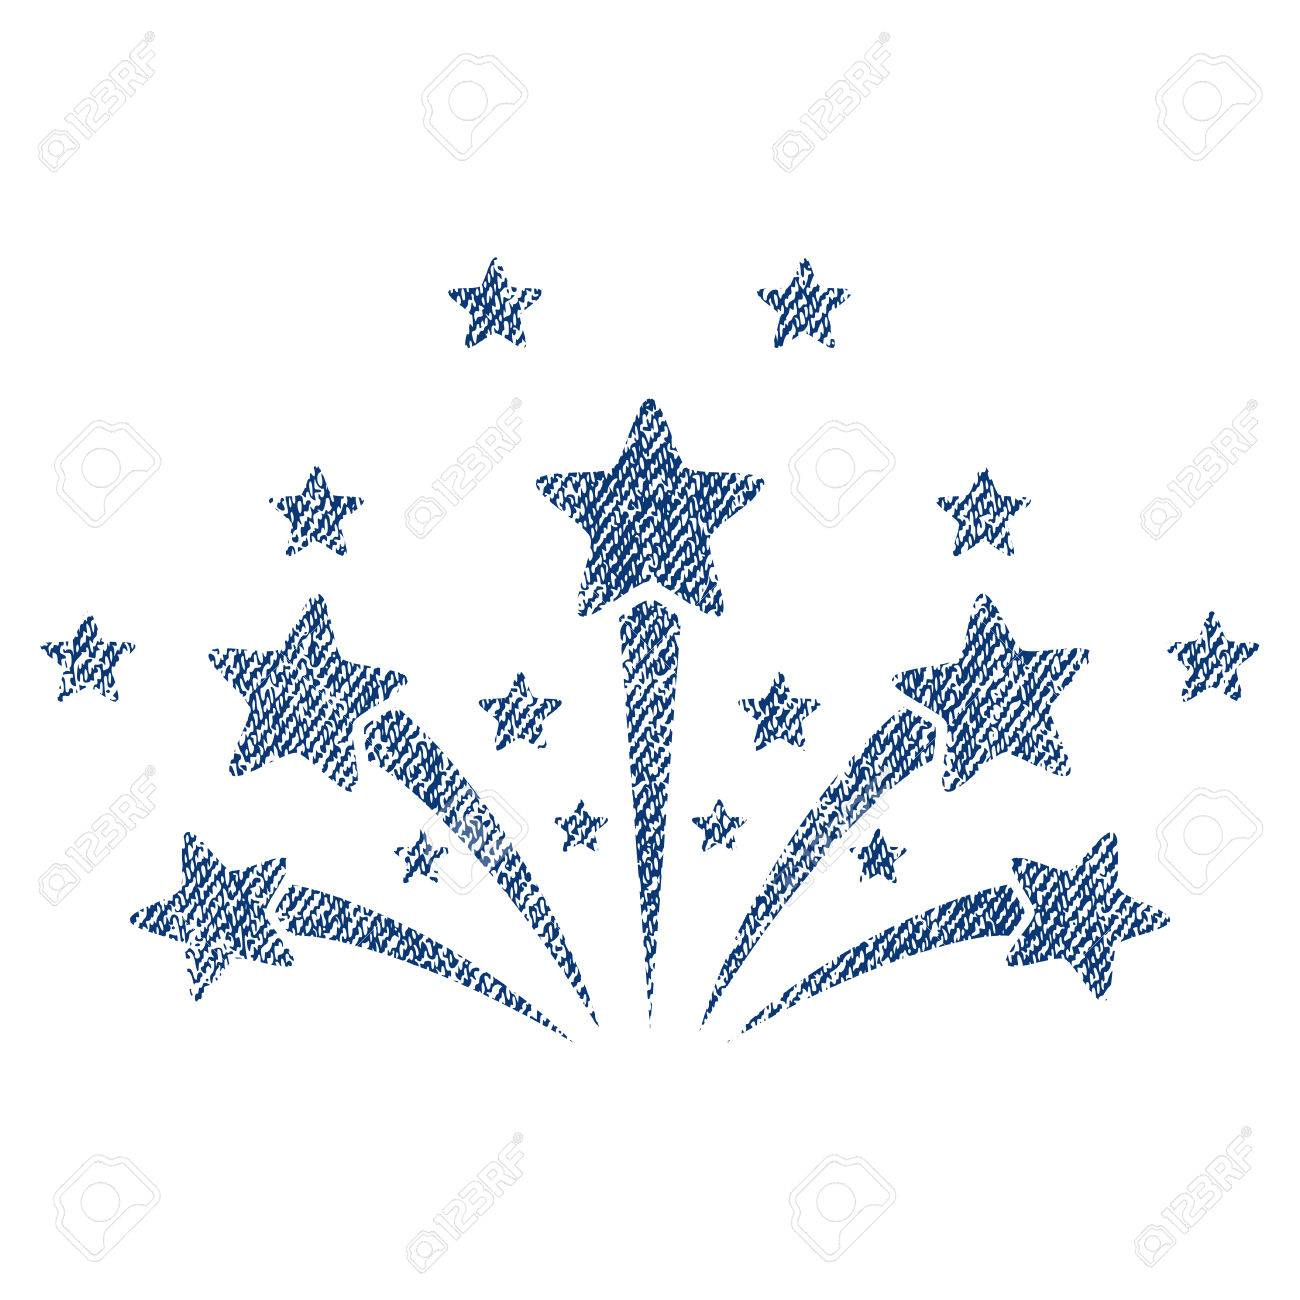 star fireworks raster textured icon for overlay watermark stamps blue jeans fabric rasterized texture